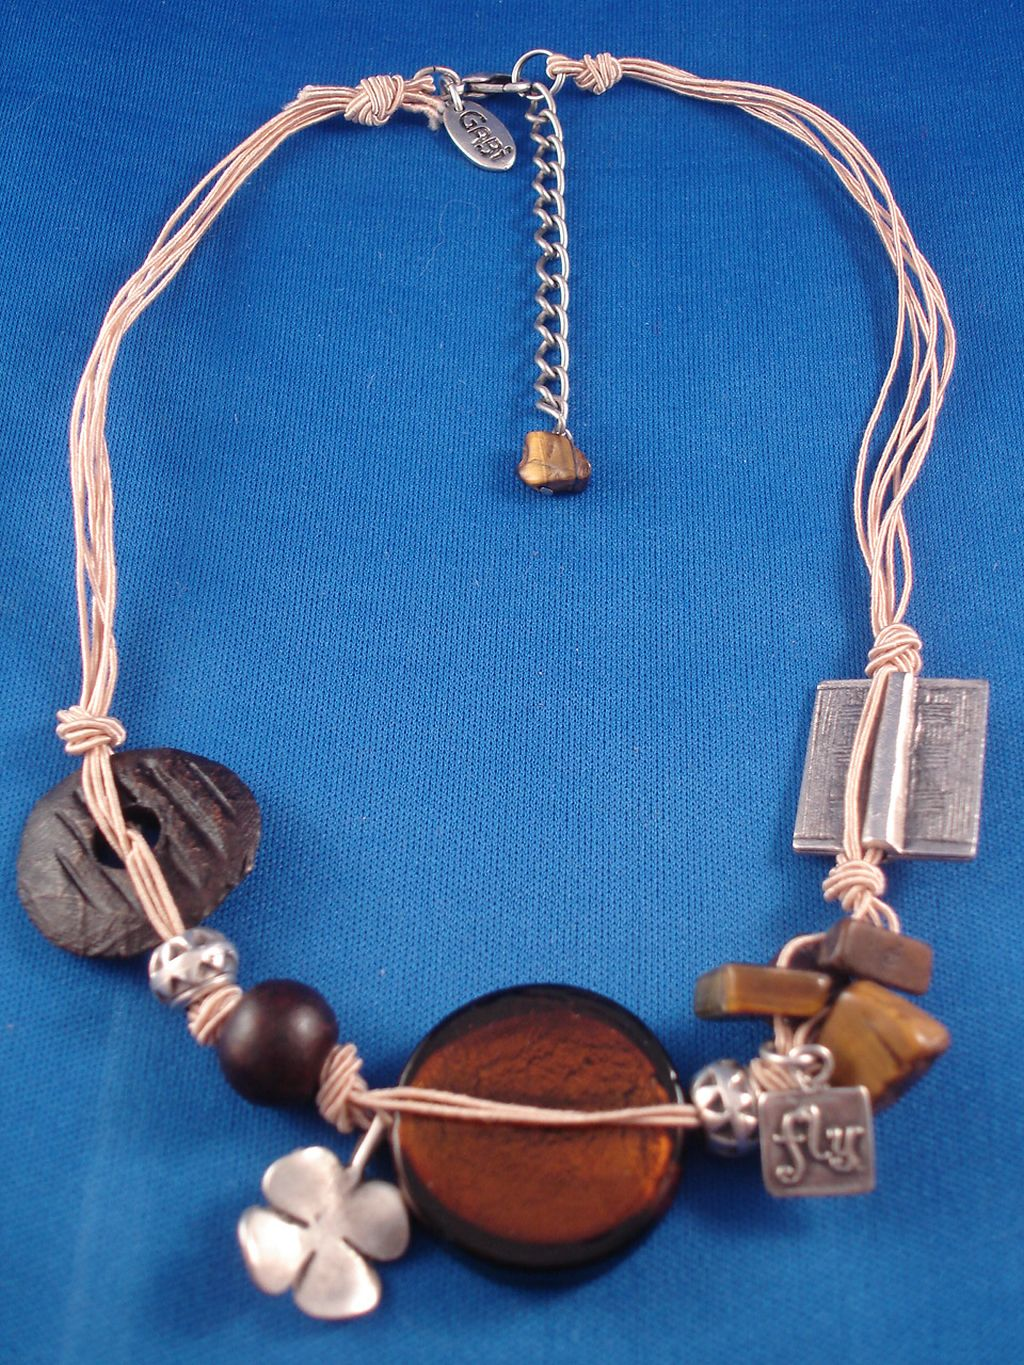 Brown/Beige Necklace, Stained Glass, Ceramic, Genuine Stones, Metal Charms & Beads, Cotton Cord, European Fashion Jewelry